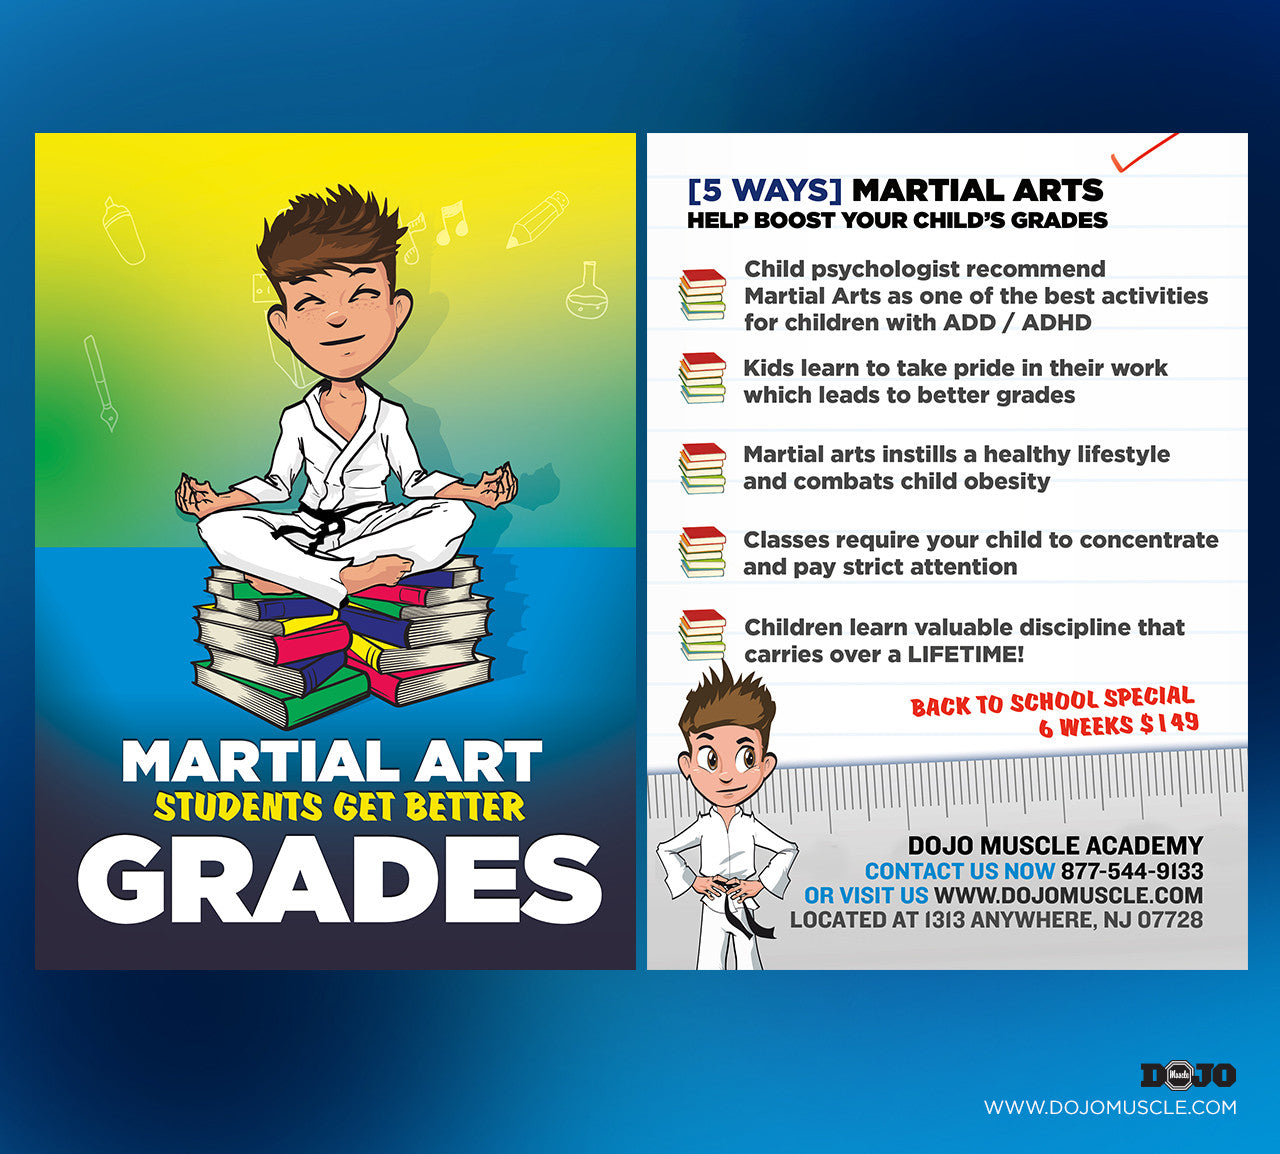 back to school martial arts does this a dojo muscle back to school martial arts students get better grades 1c